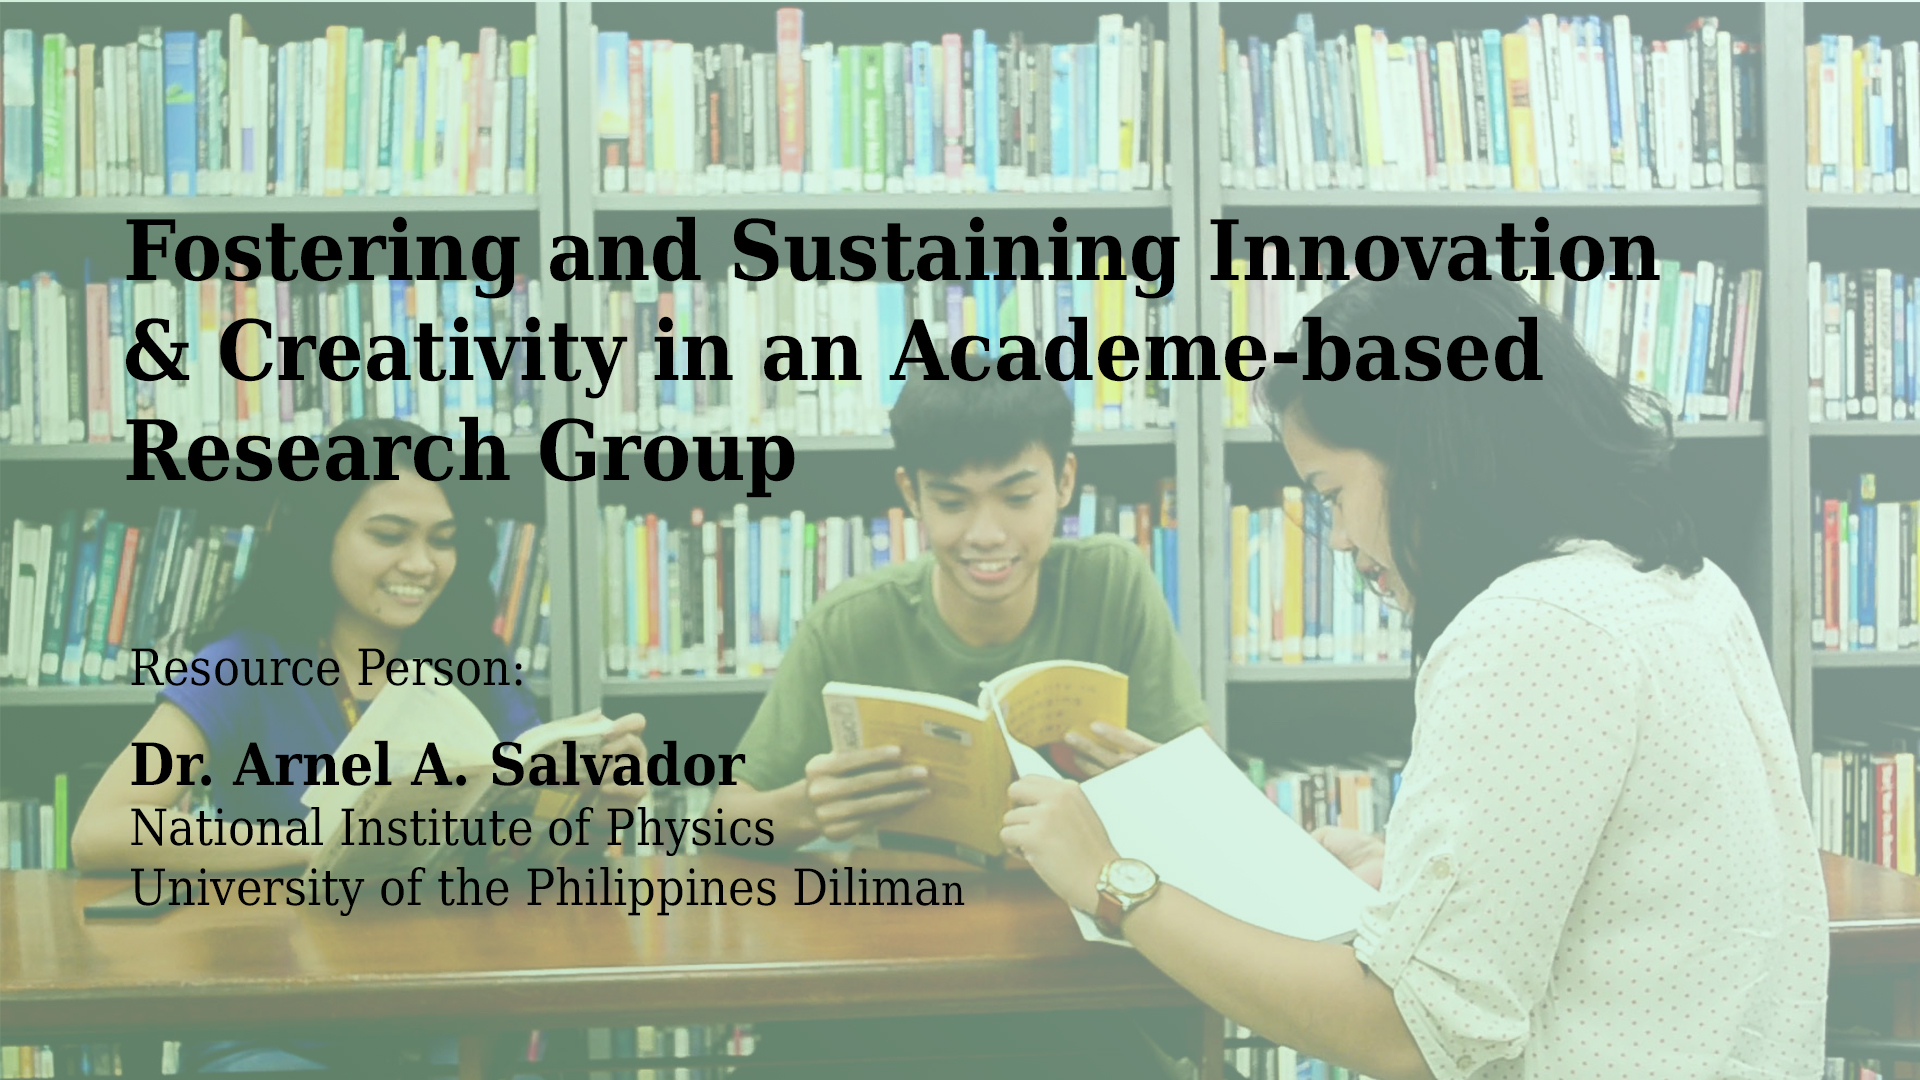 Fostering and Sustaining Innovation & Creativity in an Academe-based Research Group